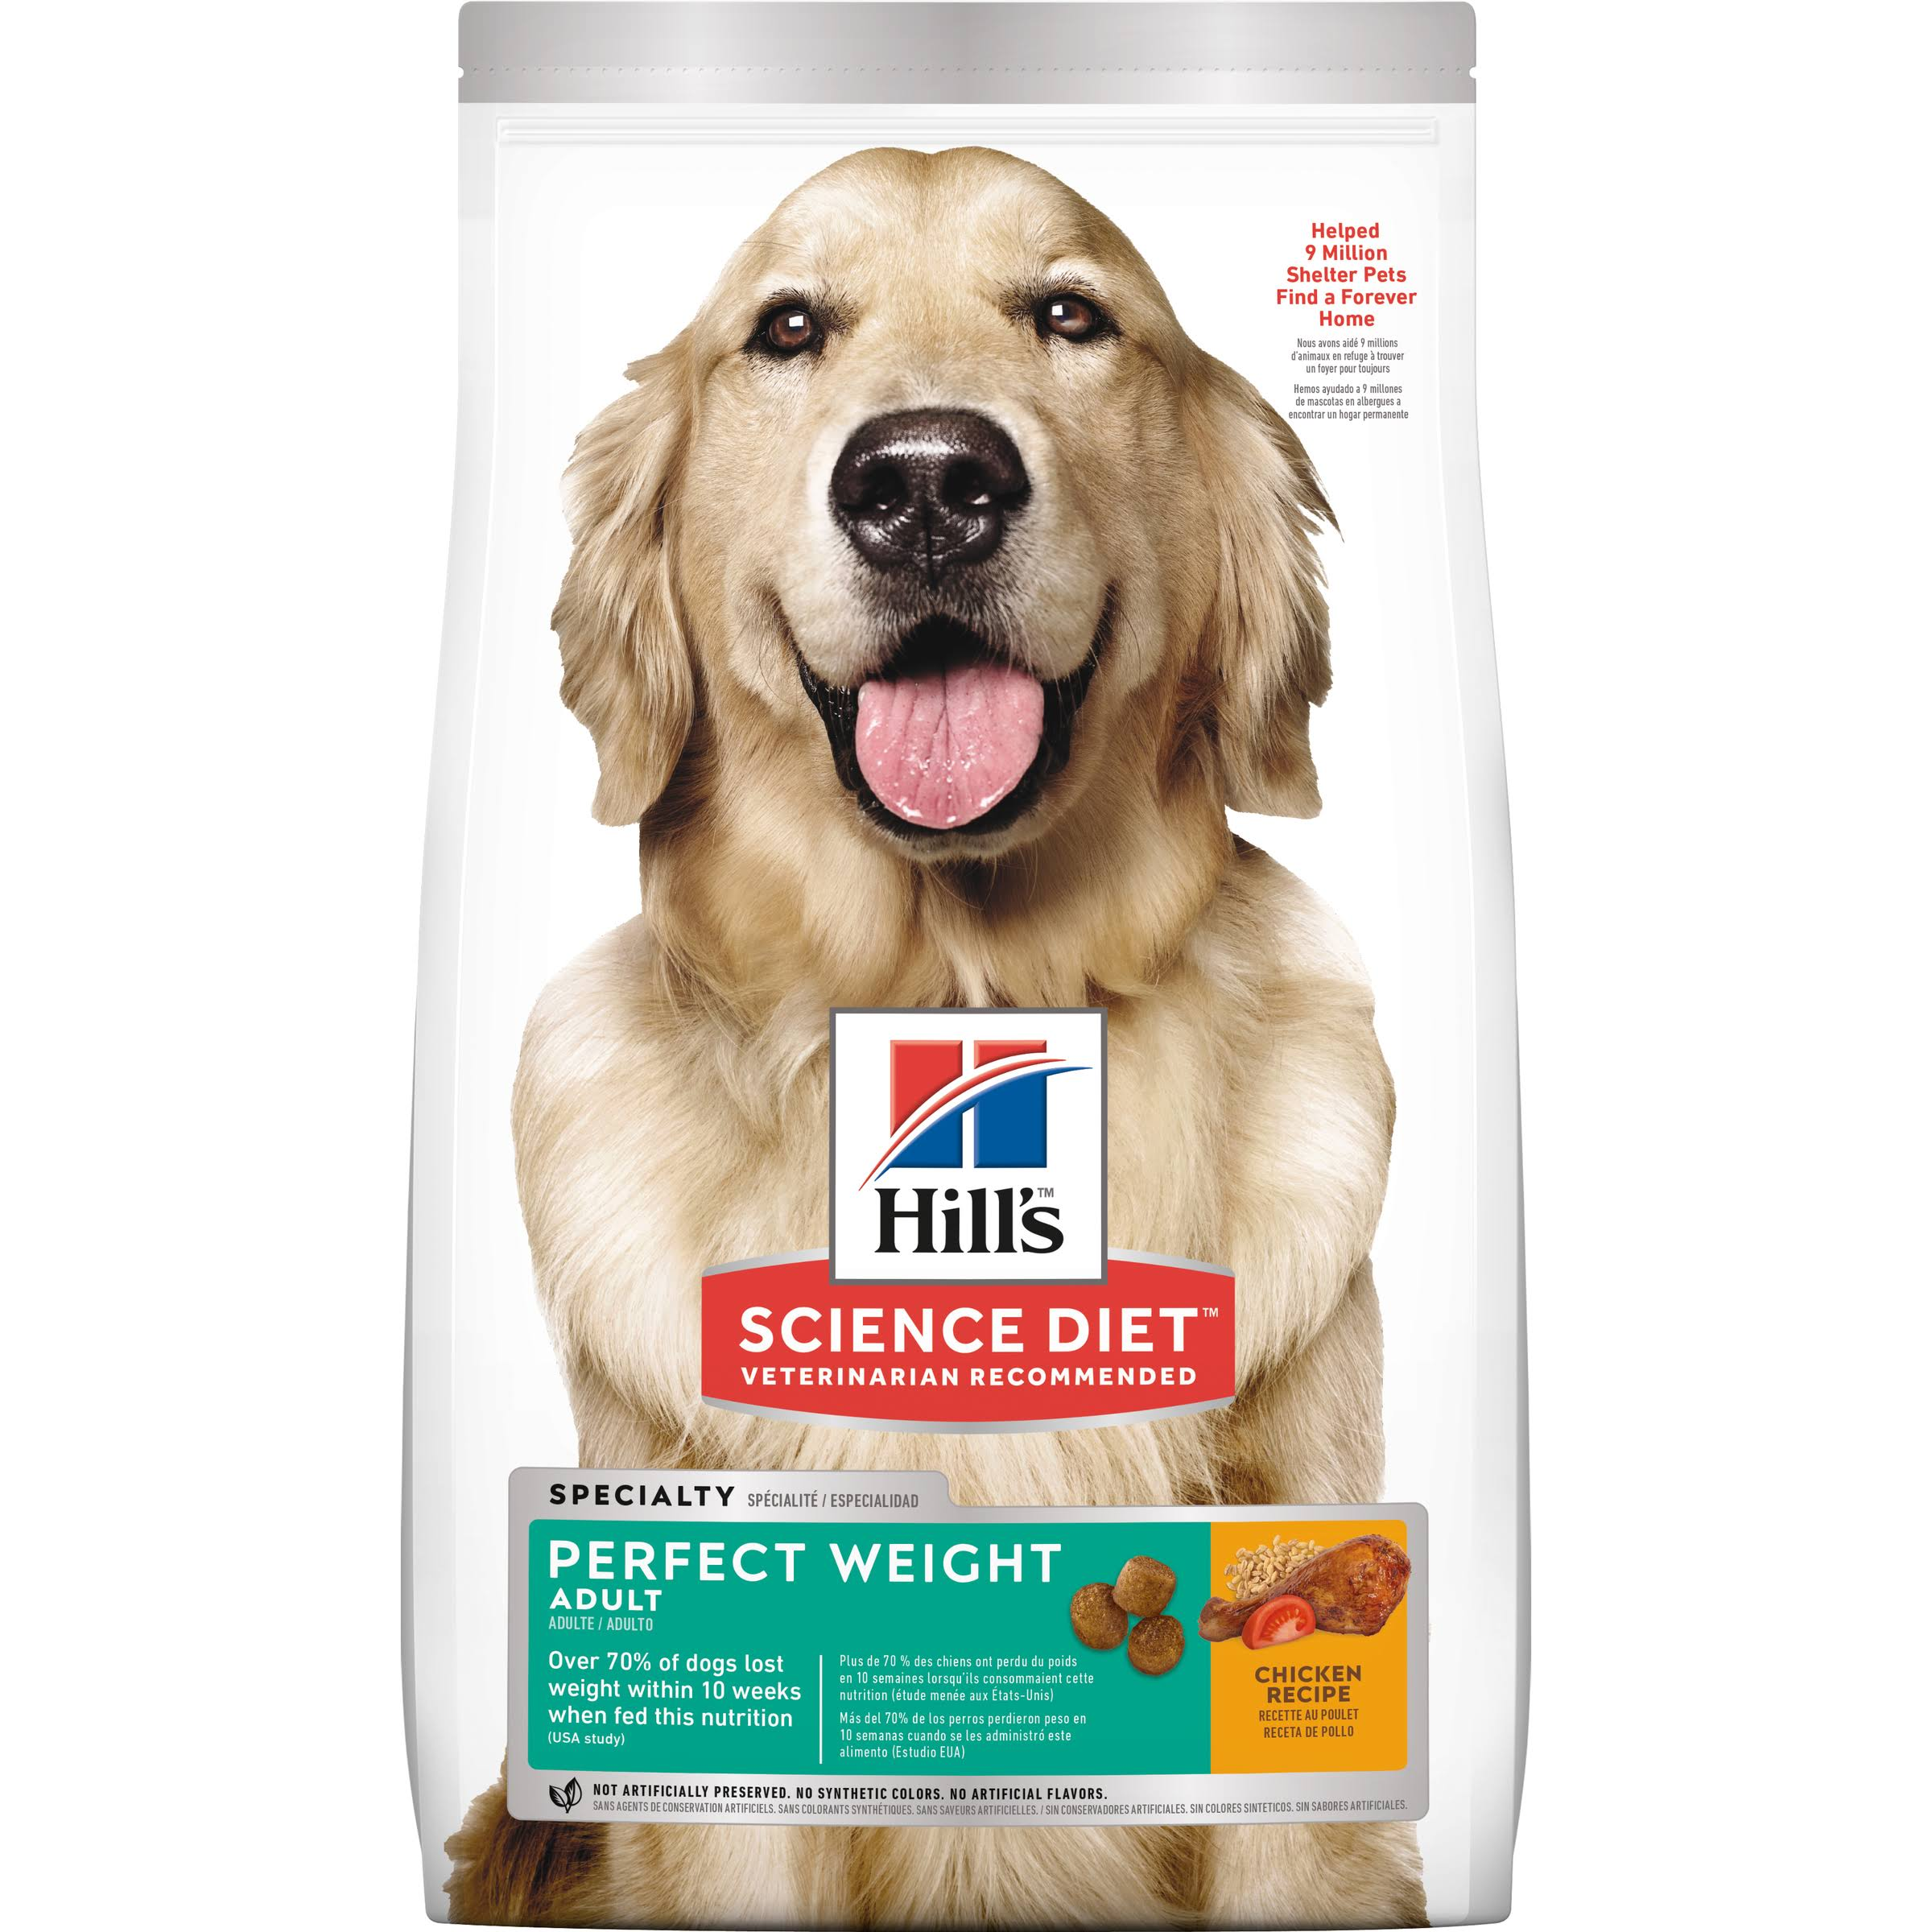 Hill's Science Diet Premium Natural Dog Food - Adult, Chicken Recipe, 4lb.bag